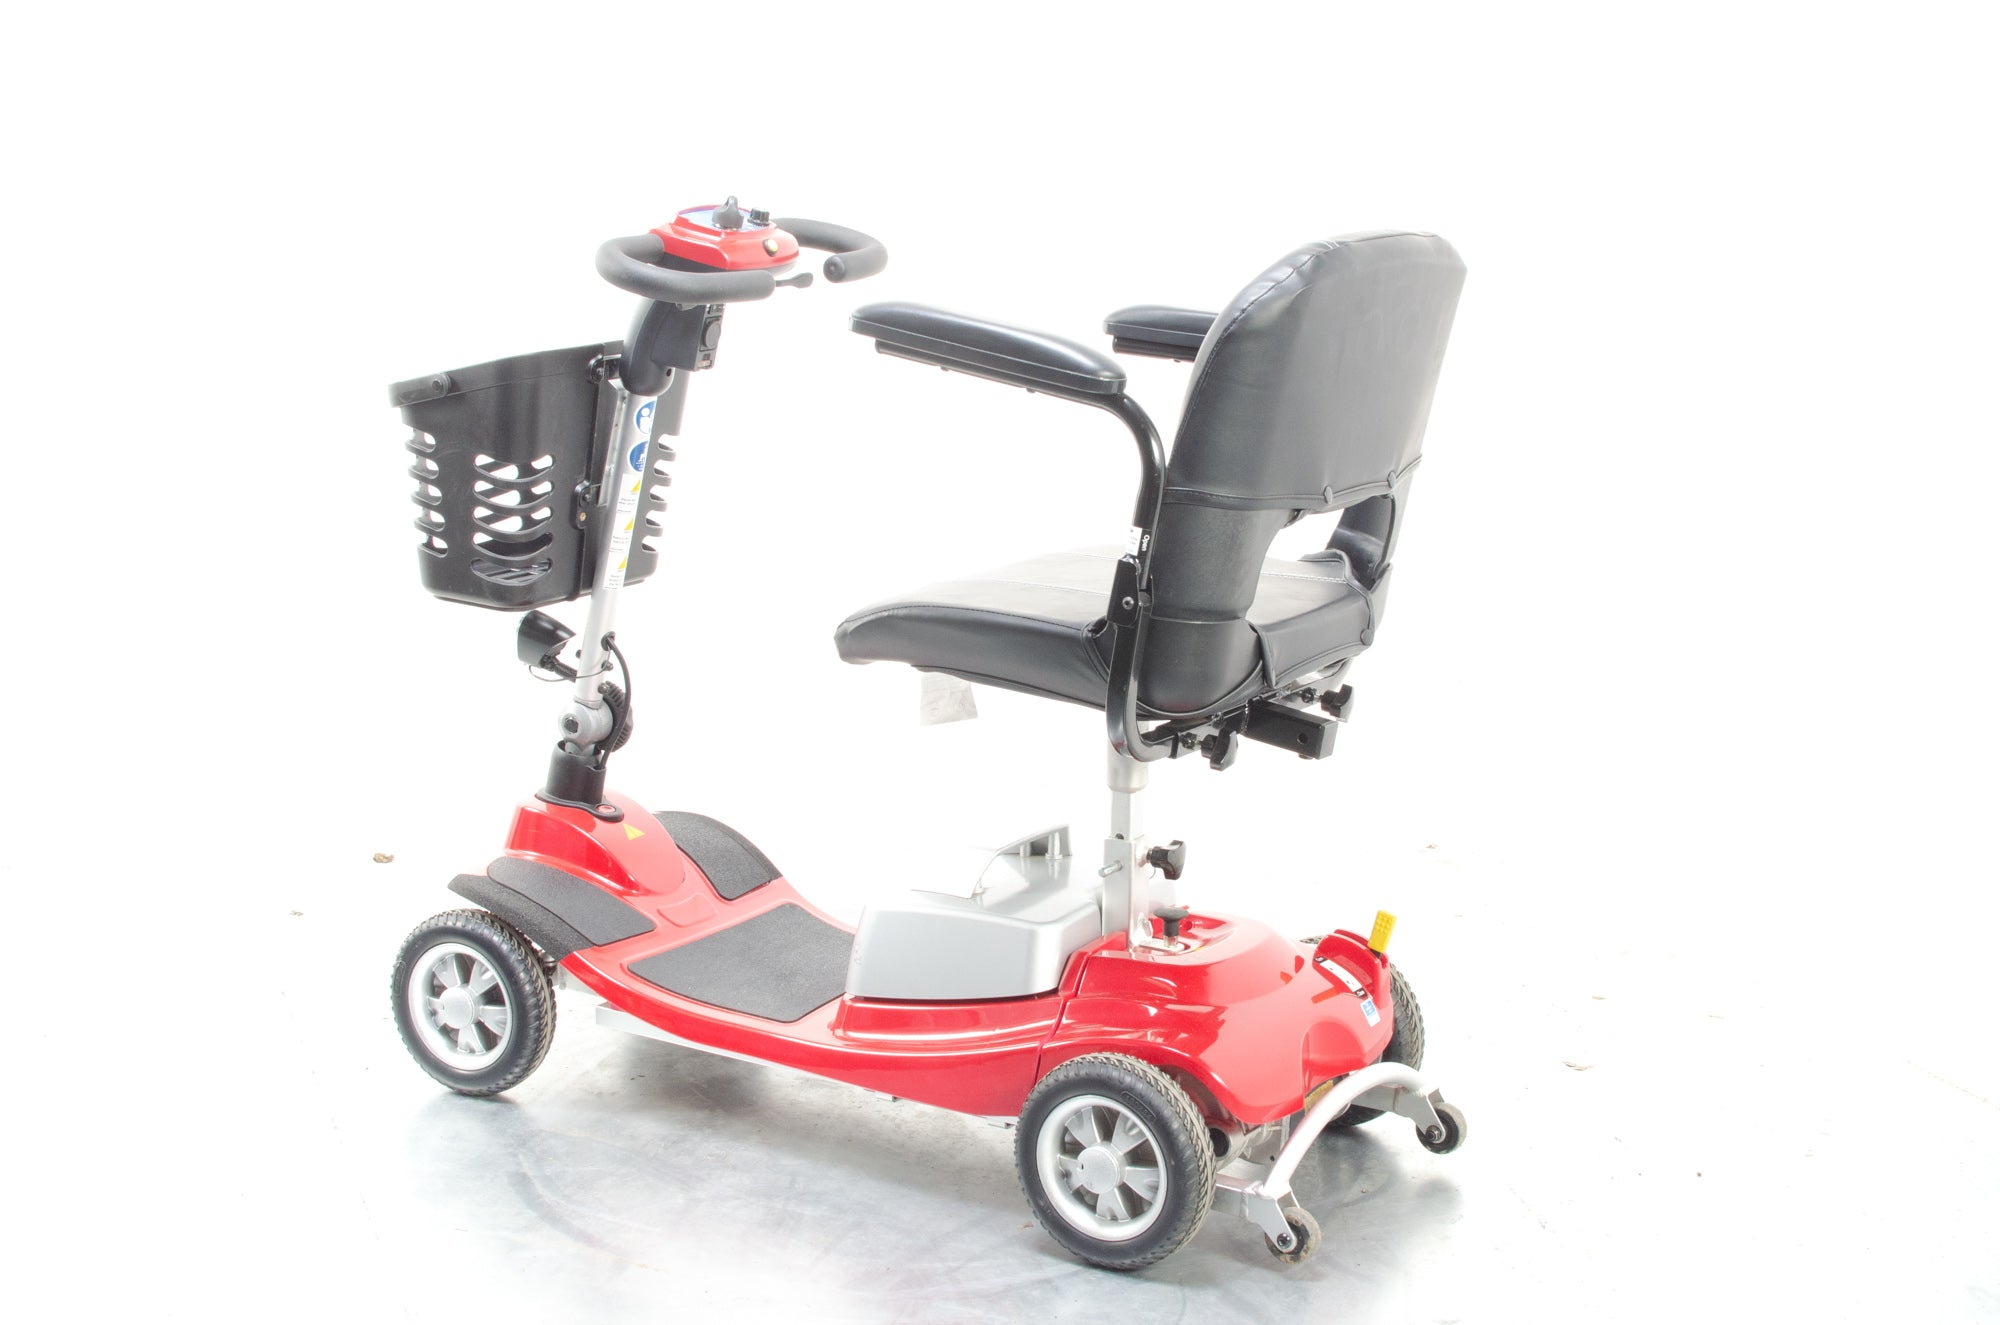 One Rehab Illusion 4mph Ultra Lightweight Aluminium Mobility Boot Scooter with Suspension